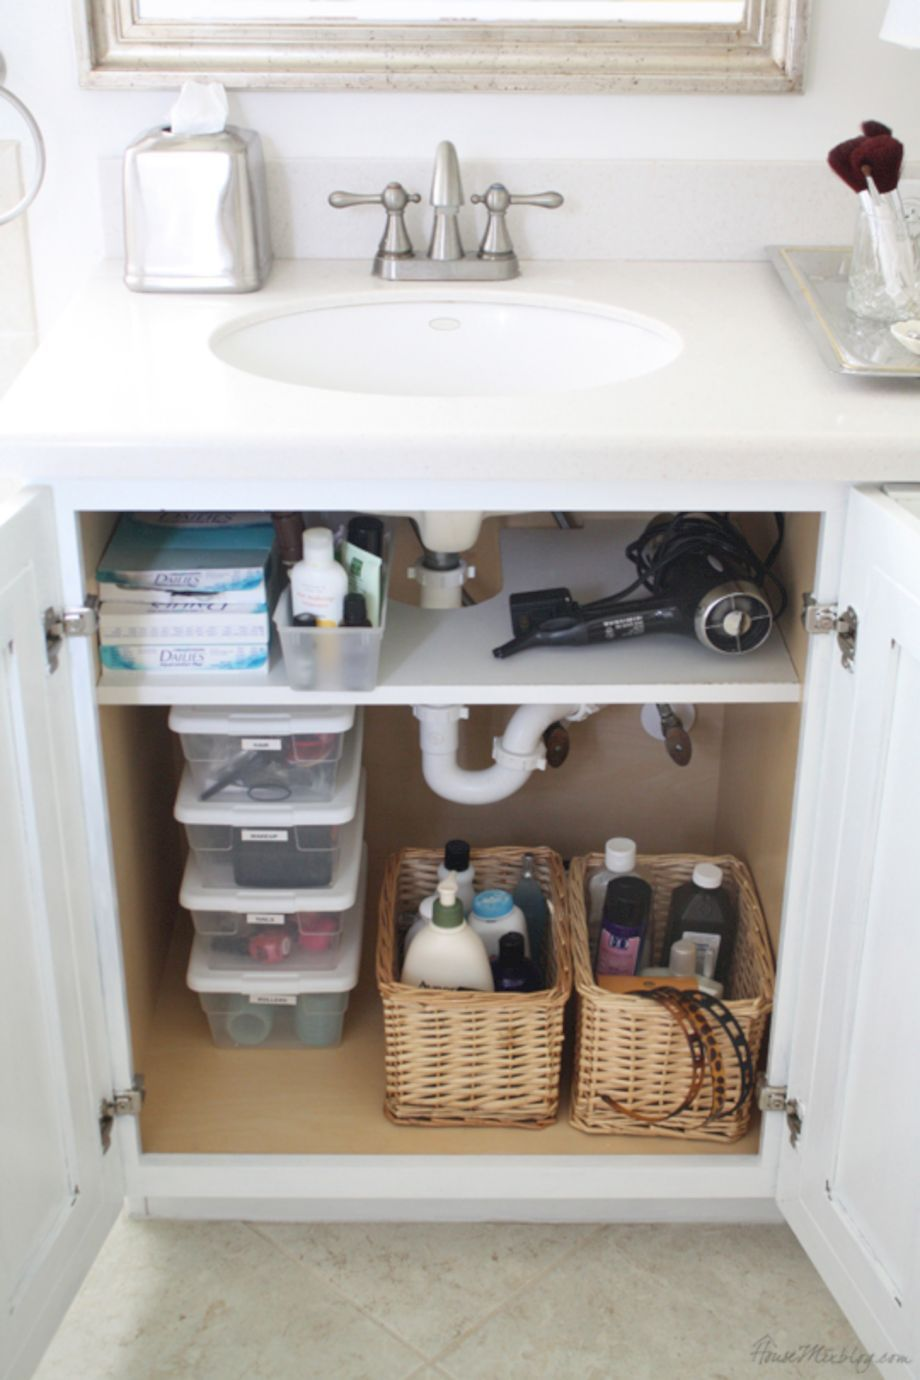 Attirant Stunning 69 Efficient Small Bathroom Storage Organization Ideas  Https://homadein.com/